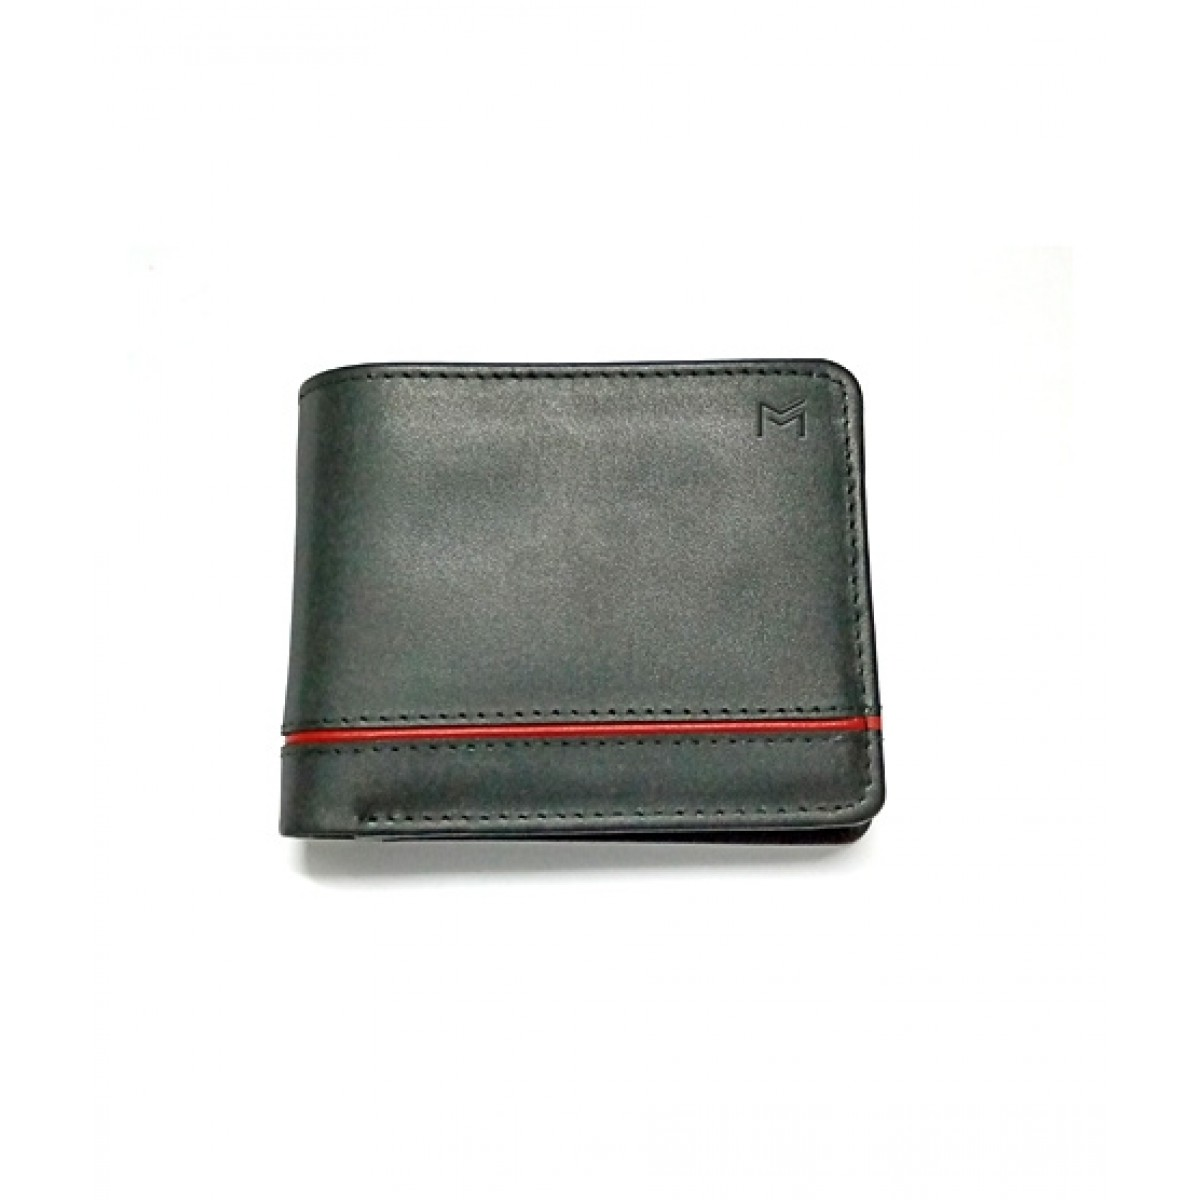 ShopCube Leather Wallet For Men Black